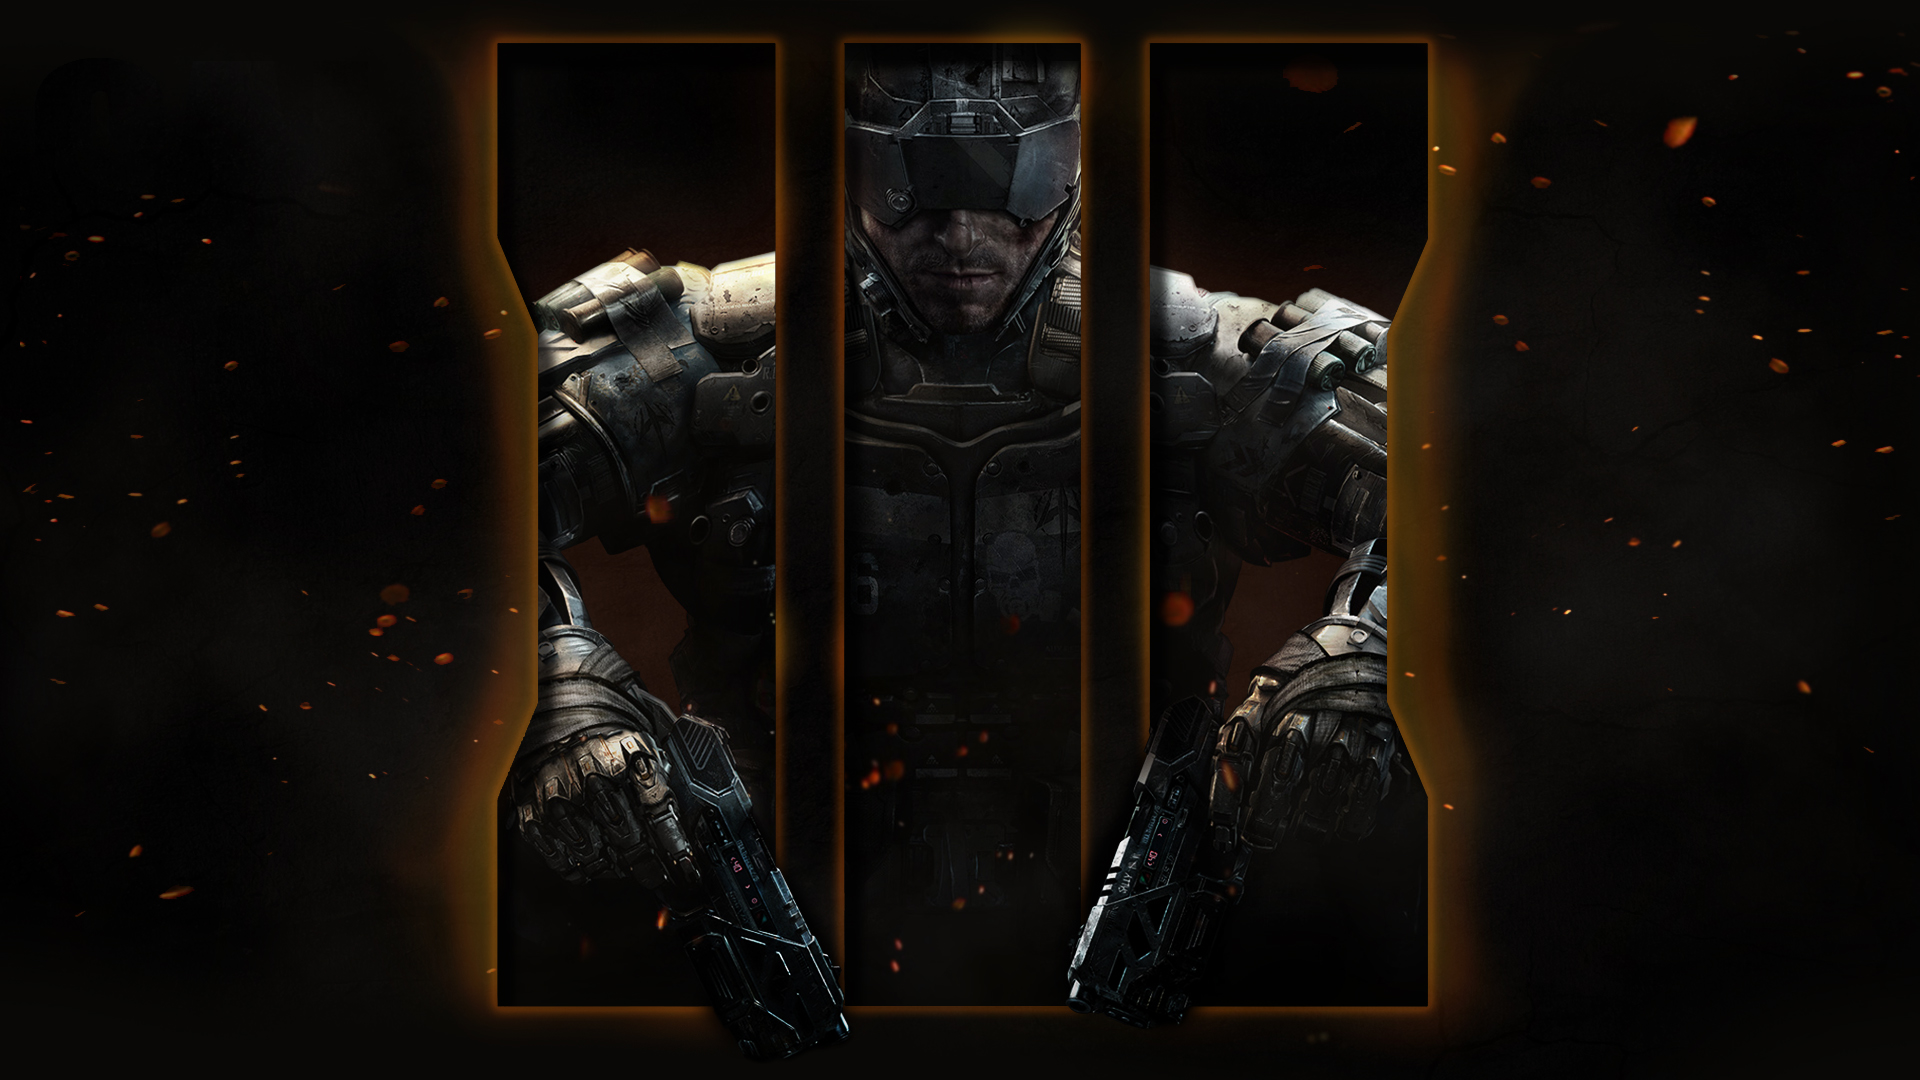 Free Download Black Ops 3 Wallpaper Call Of Duty Black Ops 3